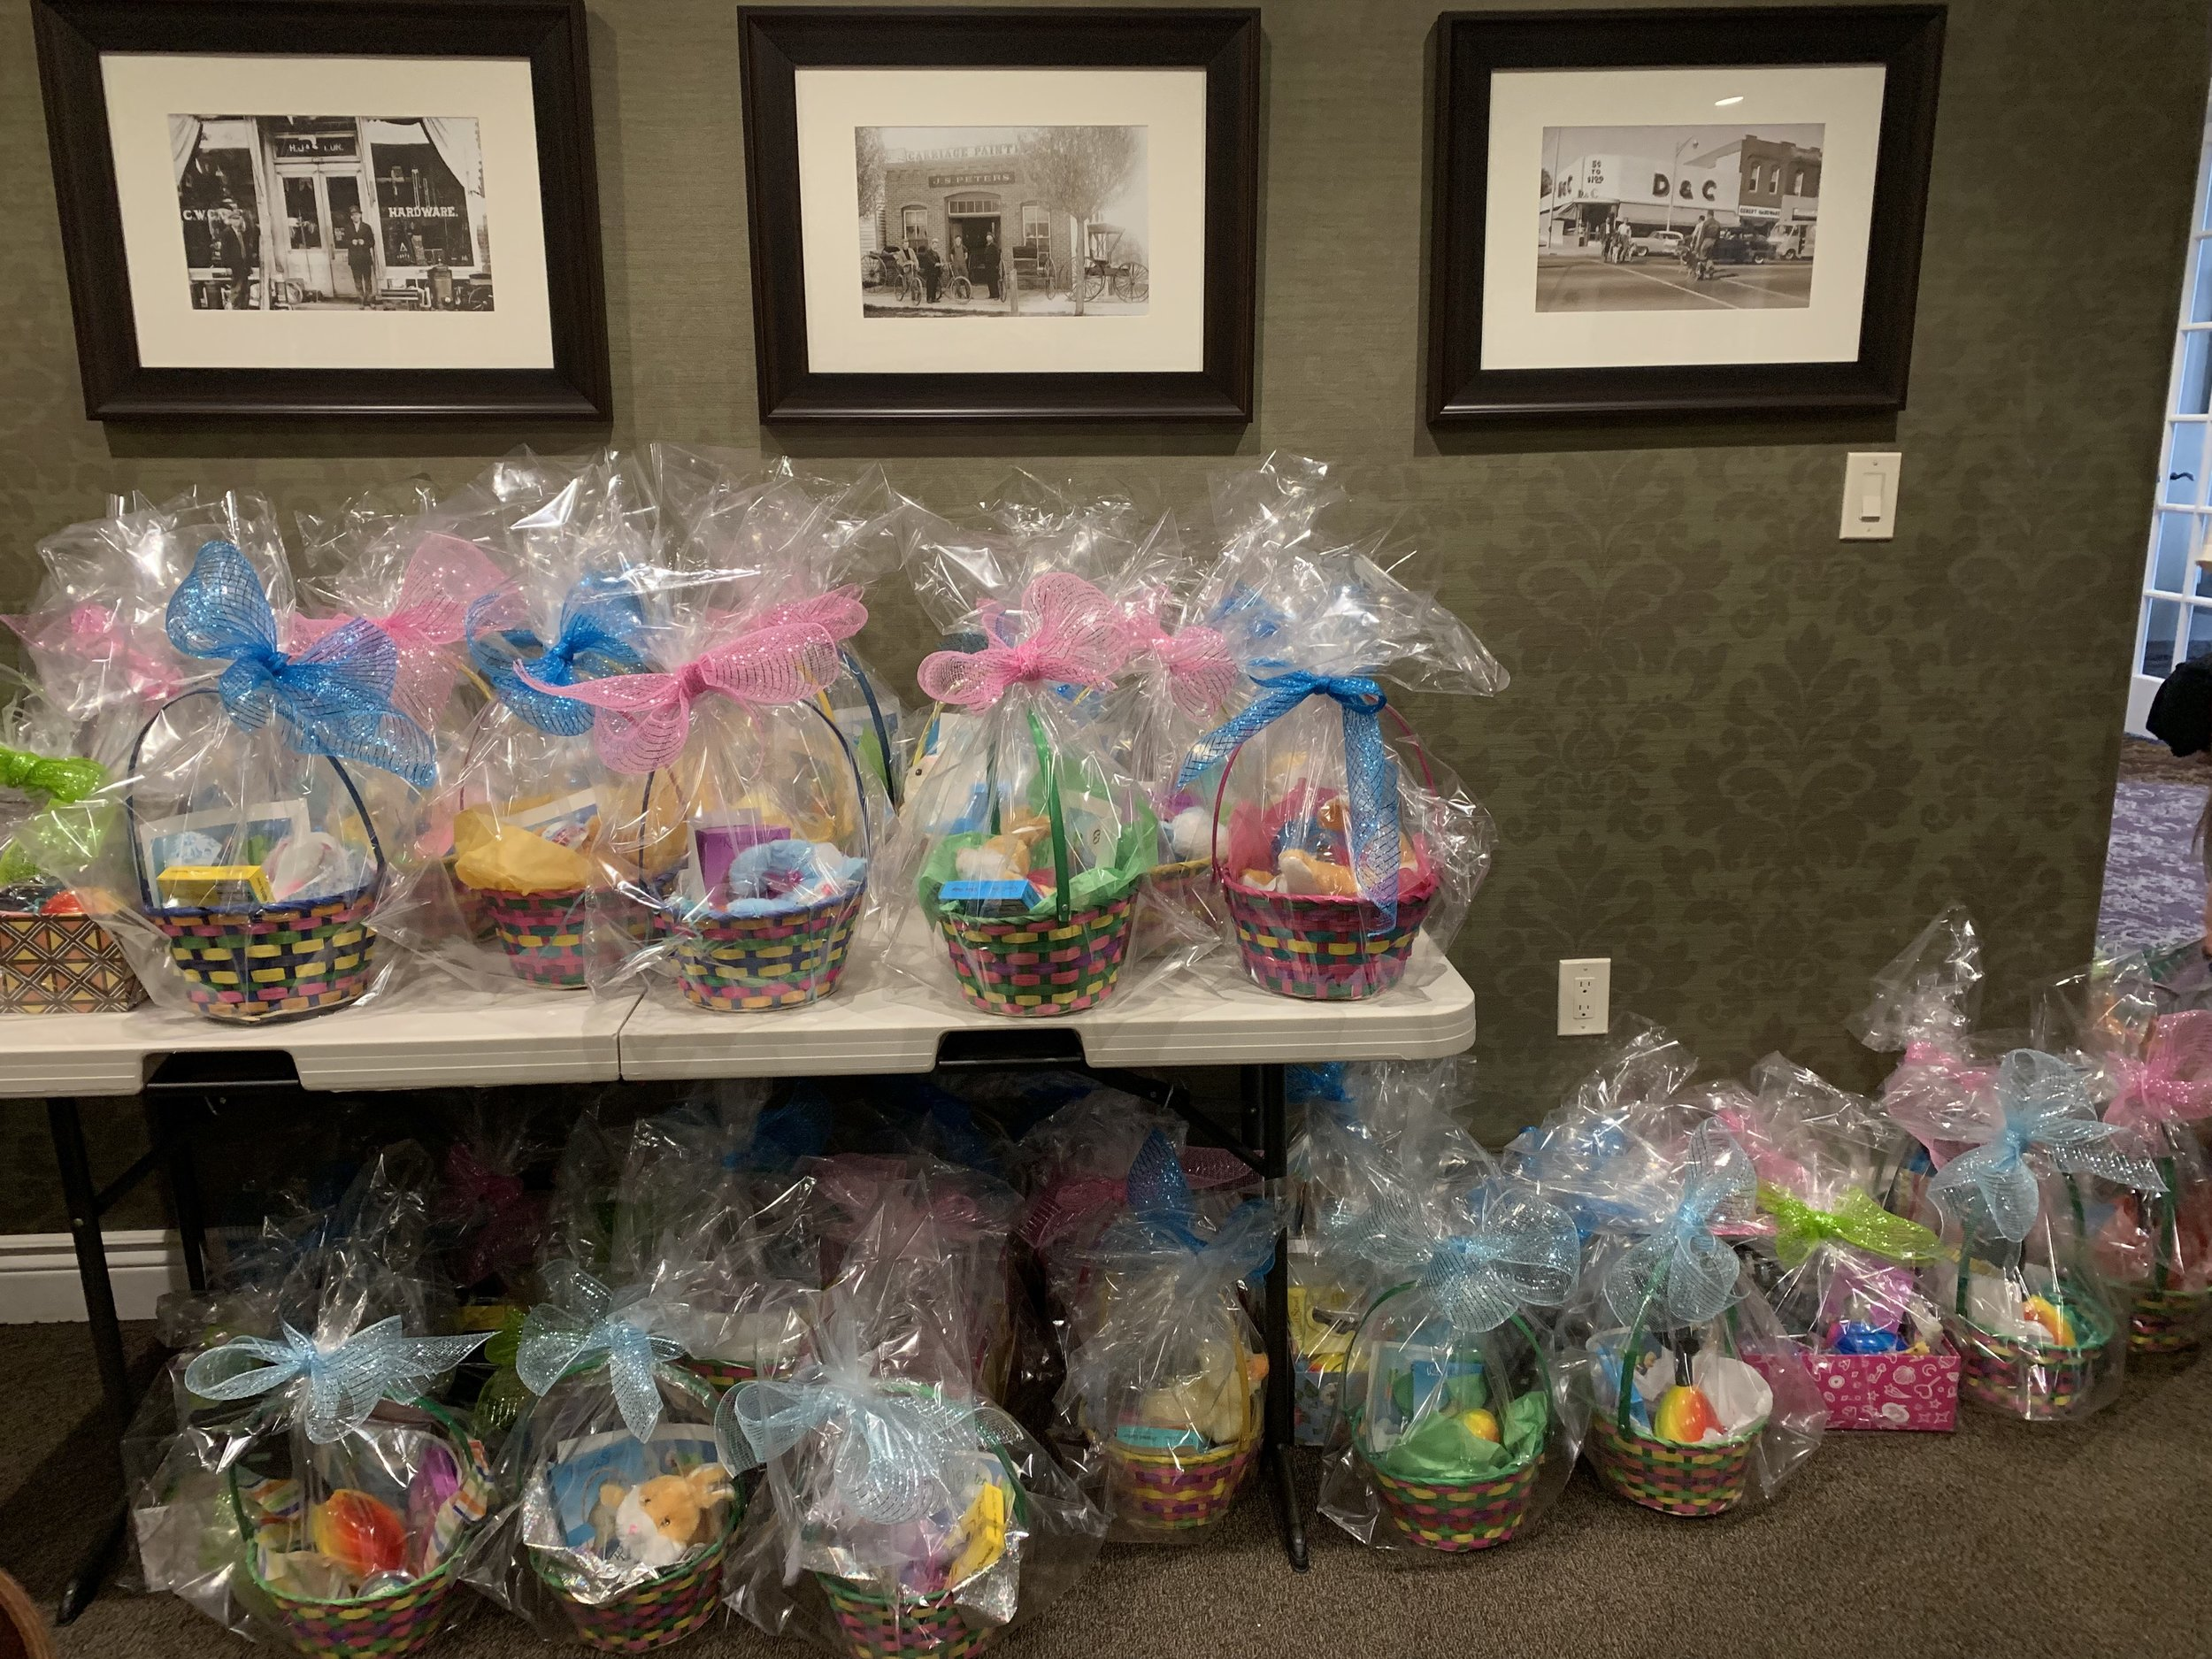 50 Easter baskets filled with treats and toys are ready for the children.